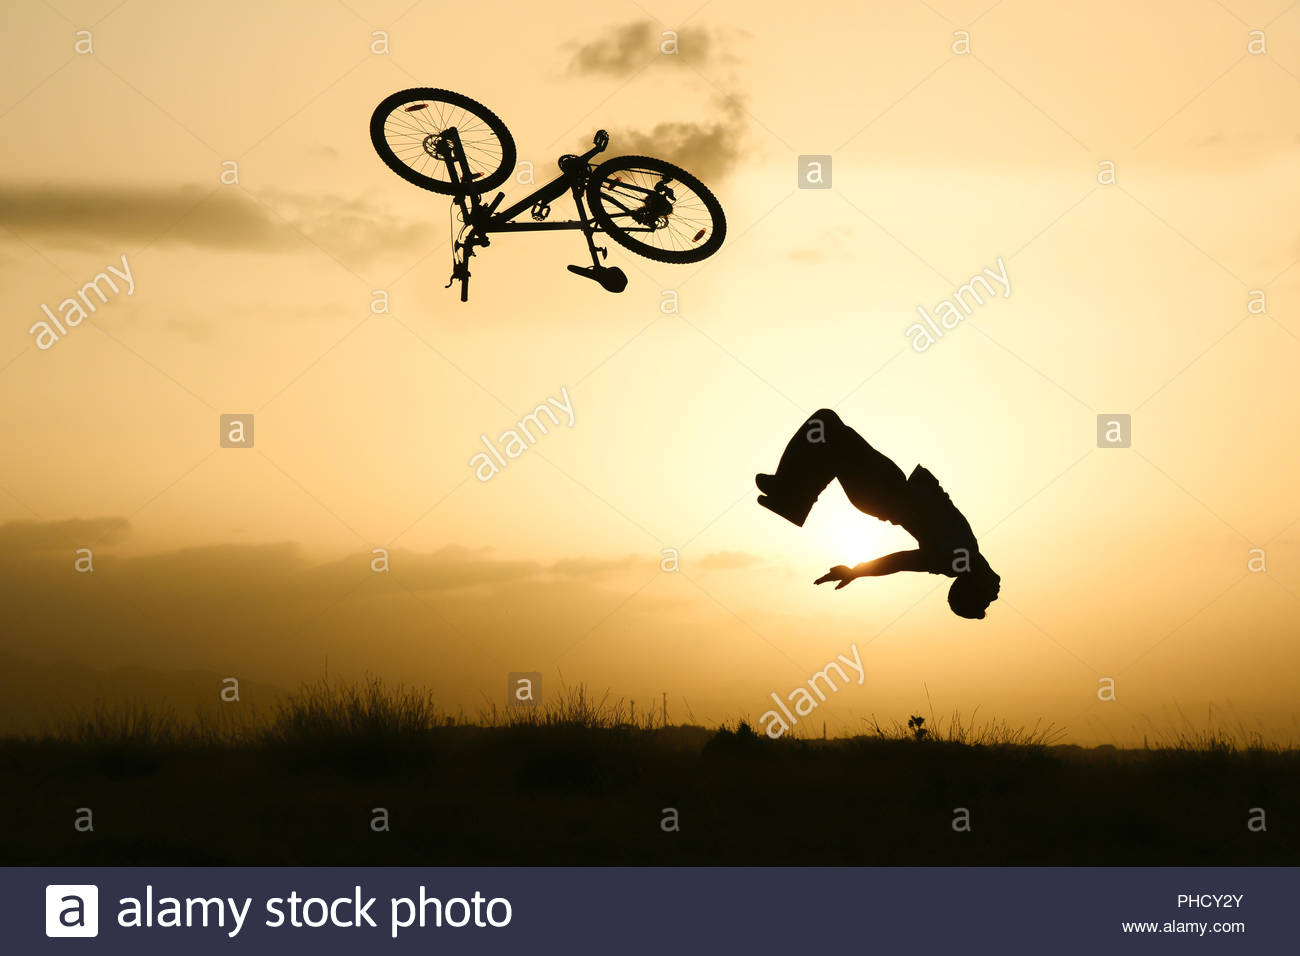 careless bike riding and accidents - Stock Image